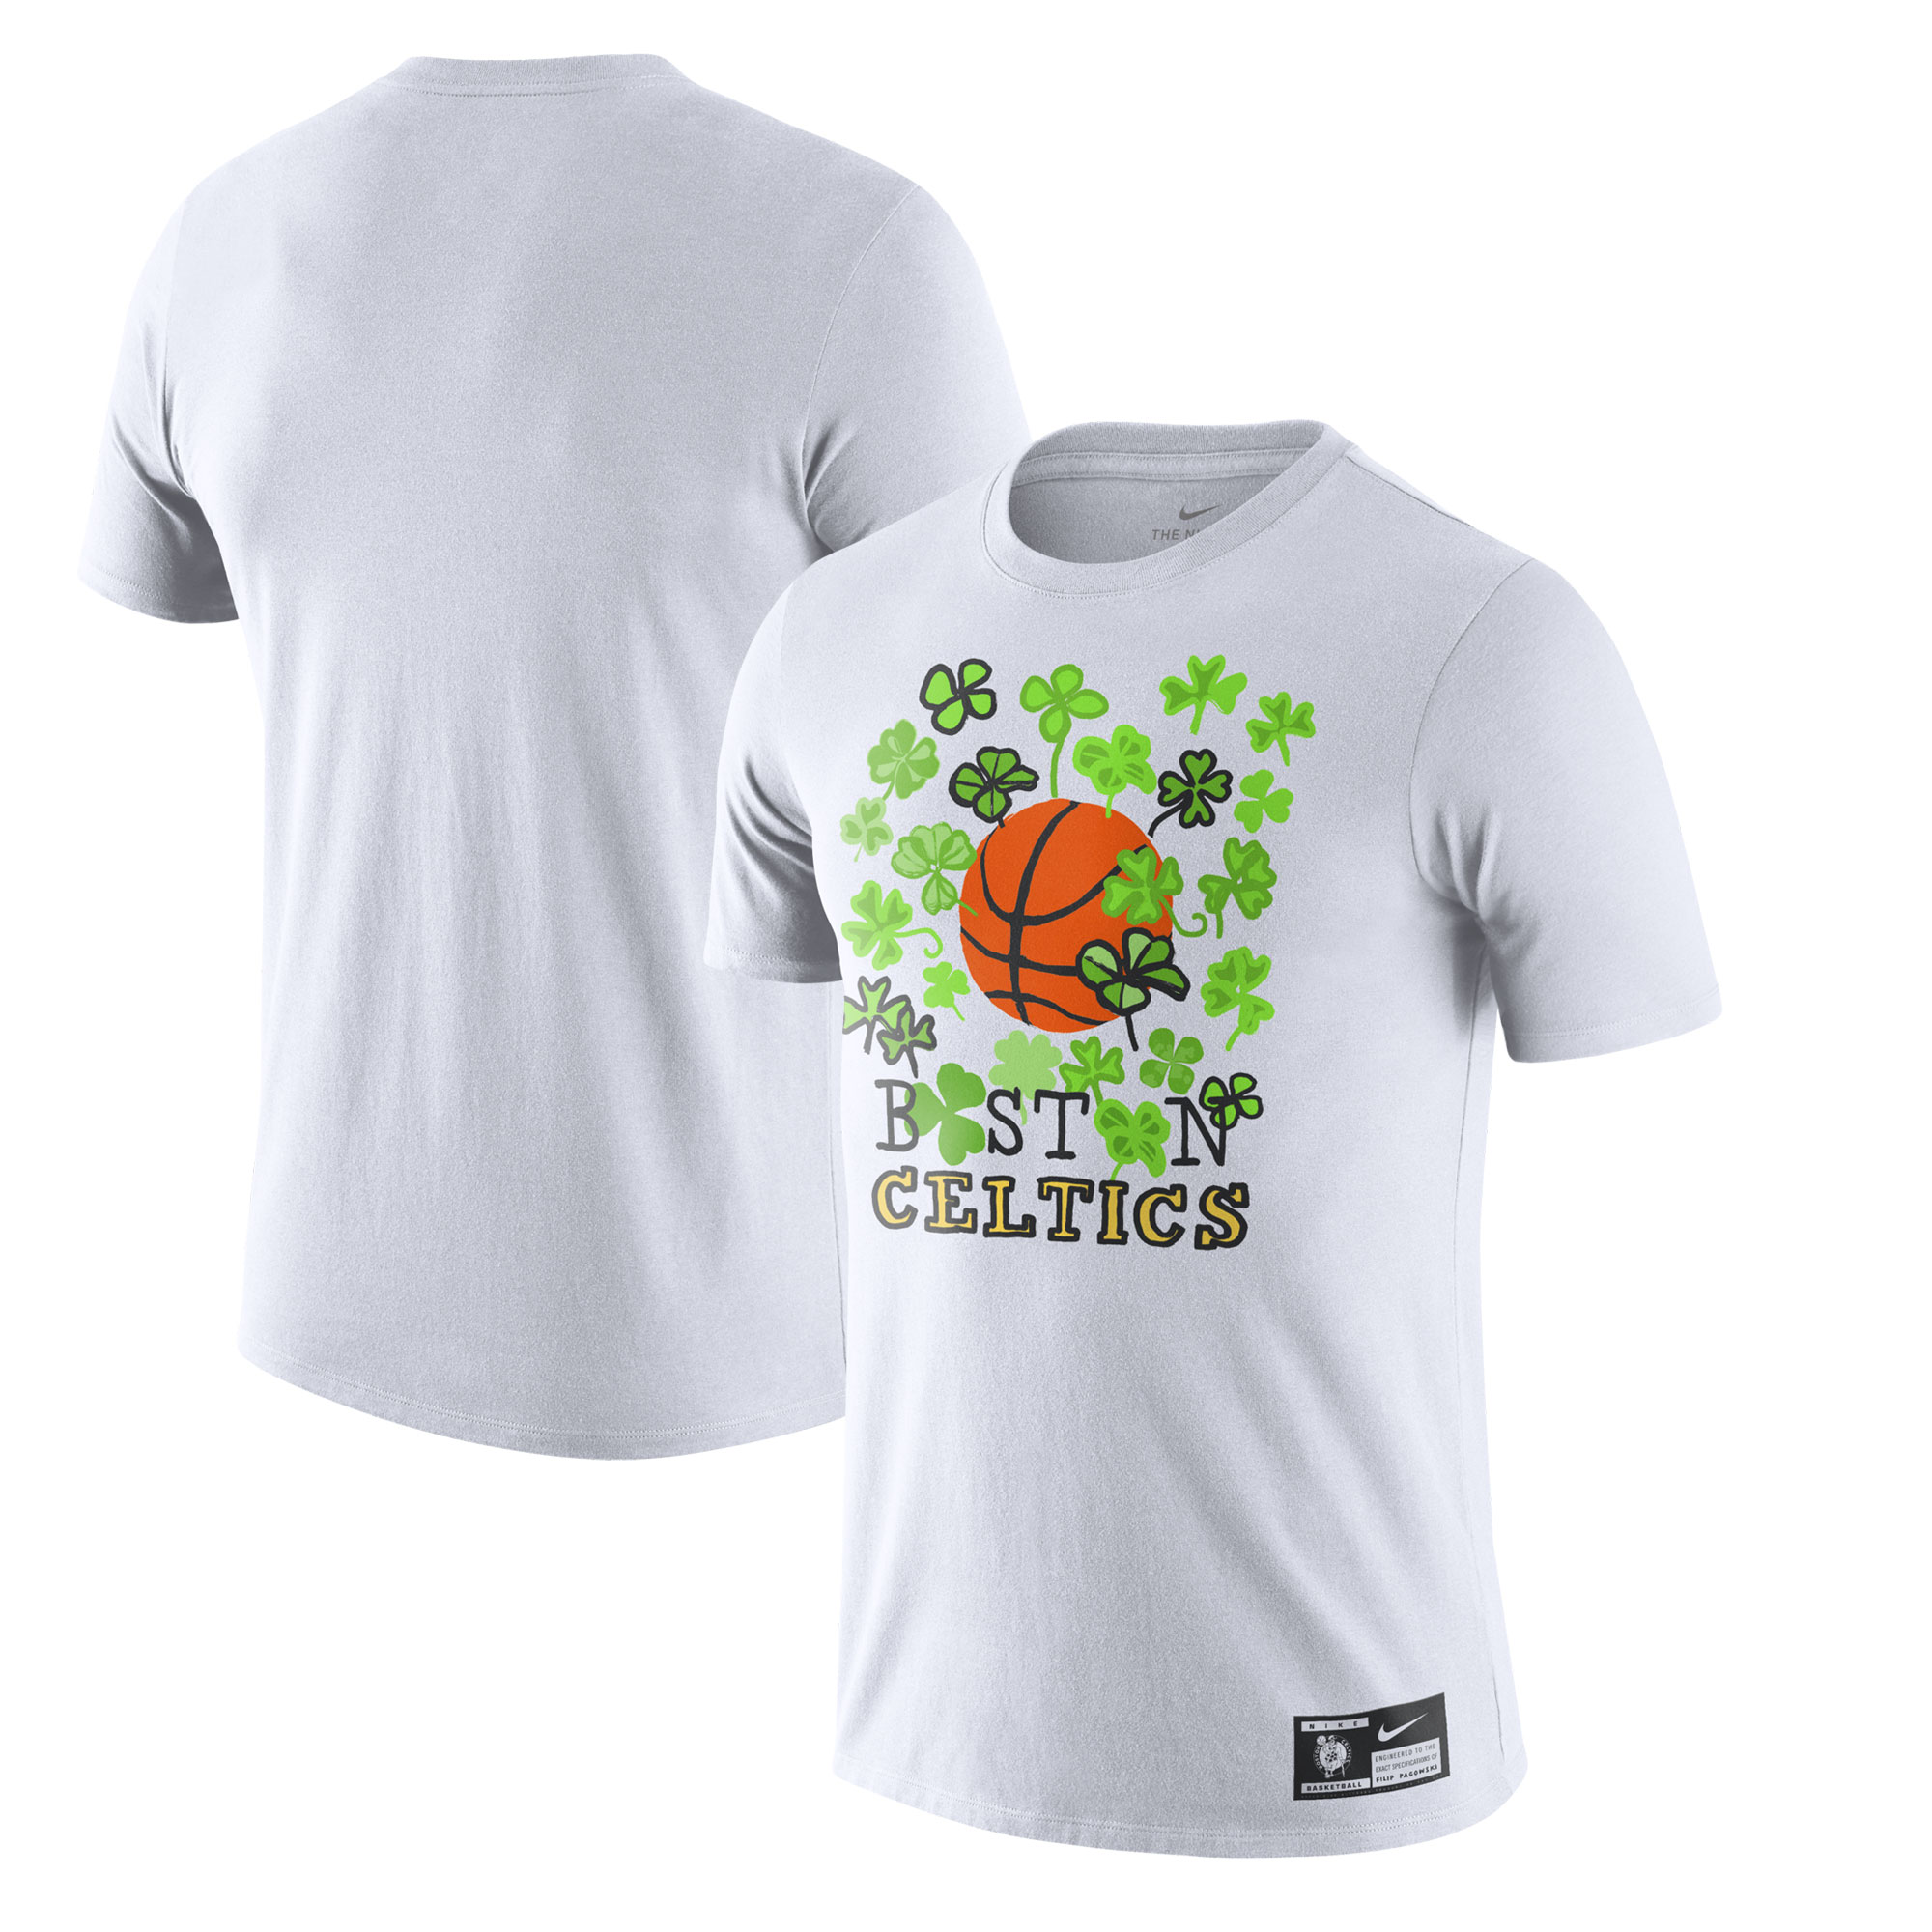 Boston Celtics Nike Pagowski Collab T-Shirt - White